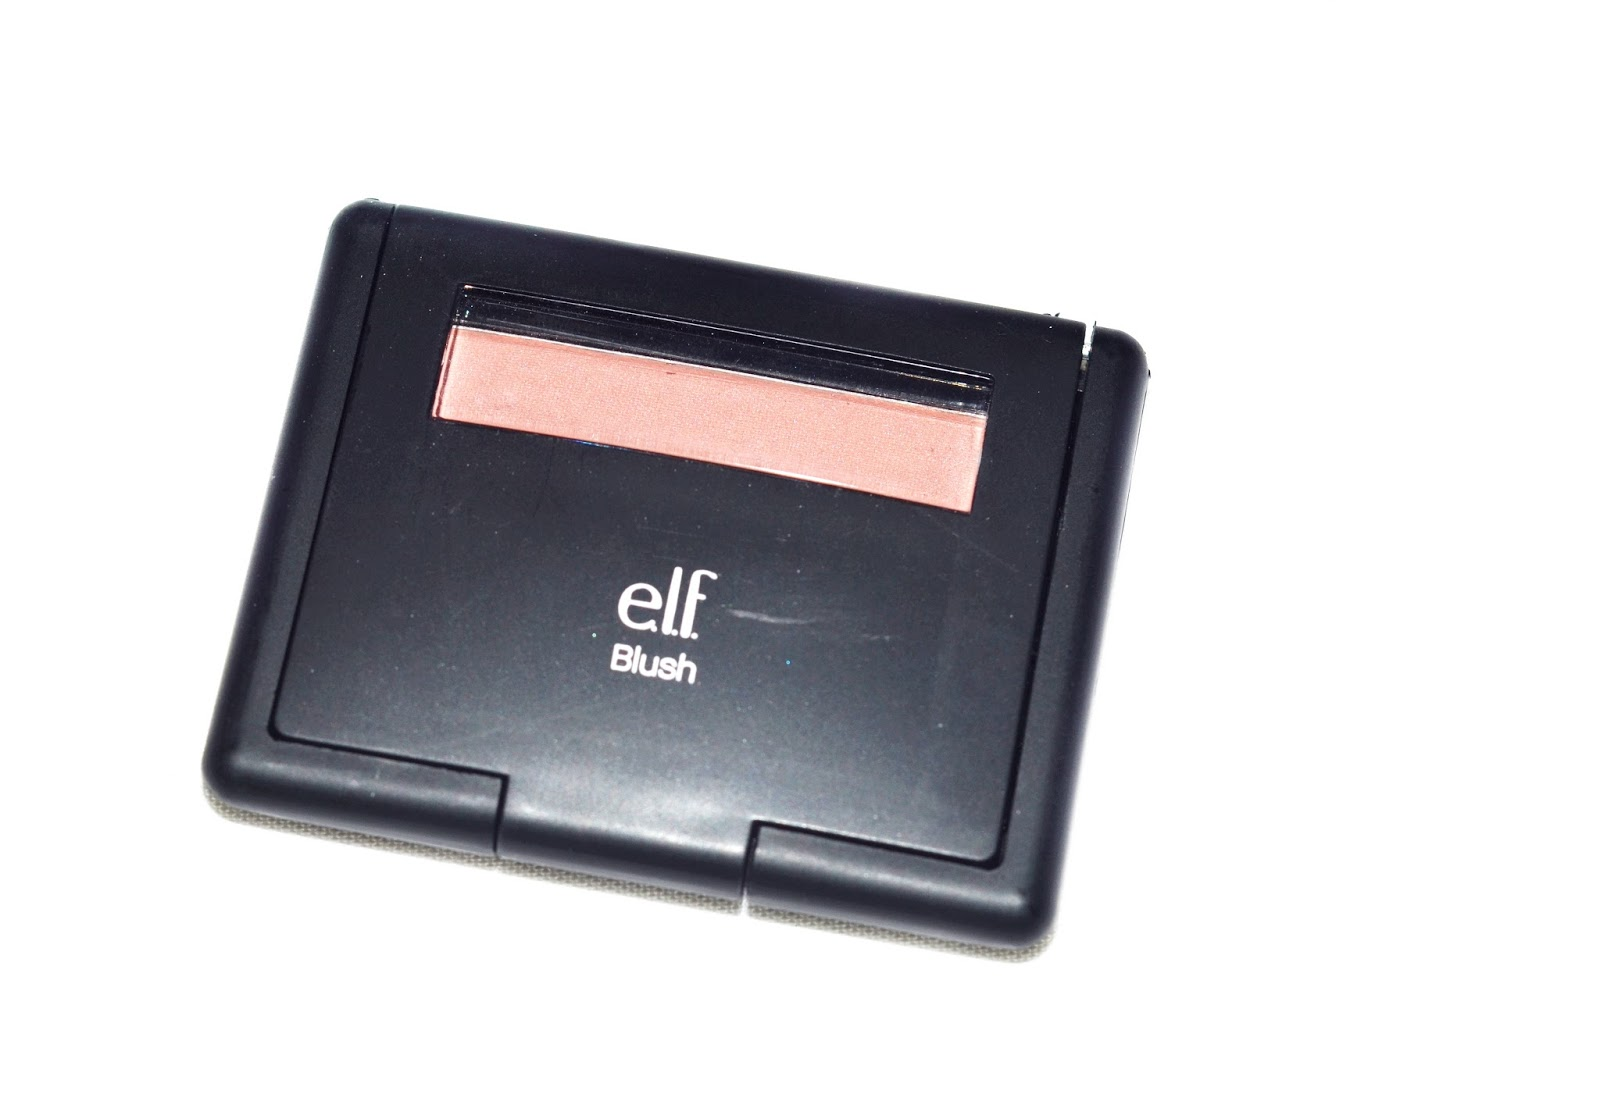 elf studio blush is a nars orgasm dupe